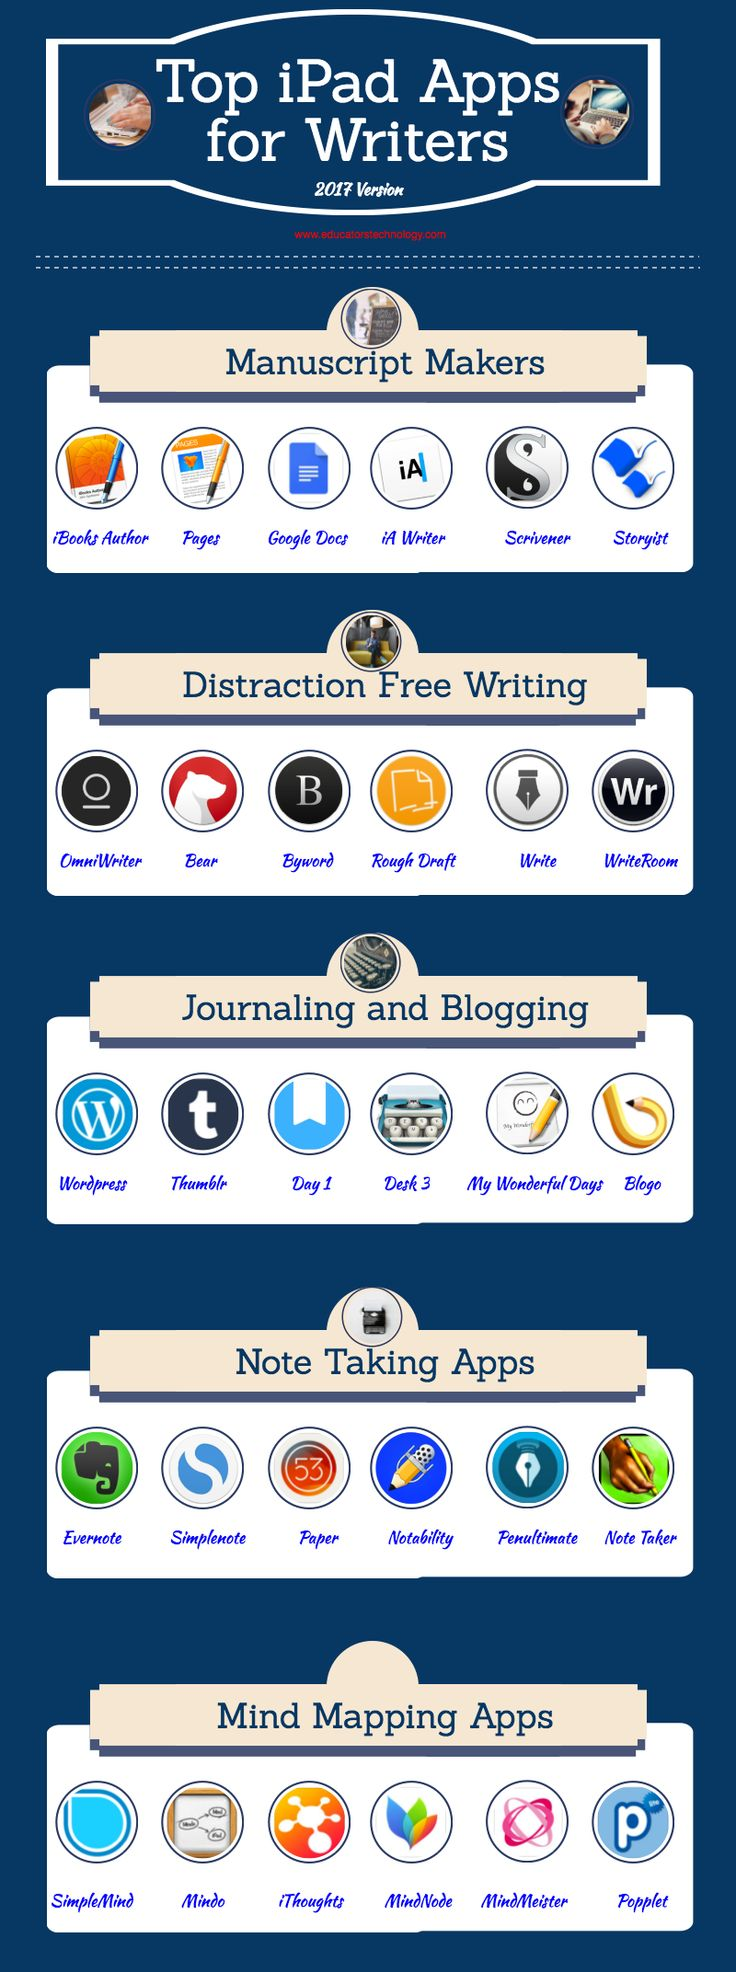 The Top 10 Apps for Writers